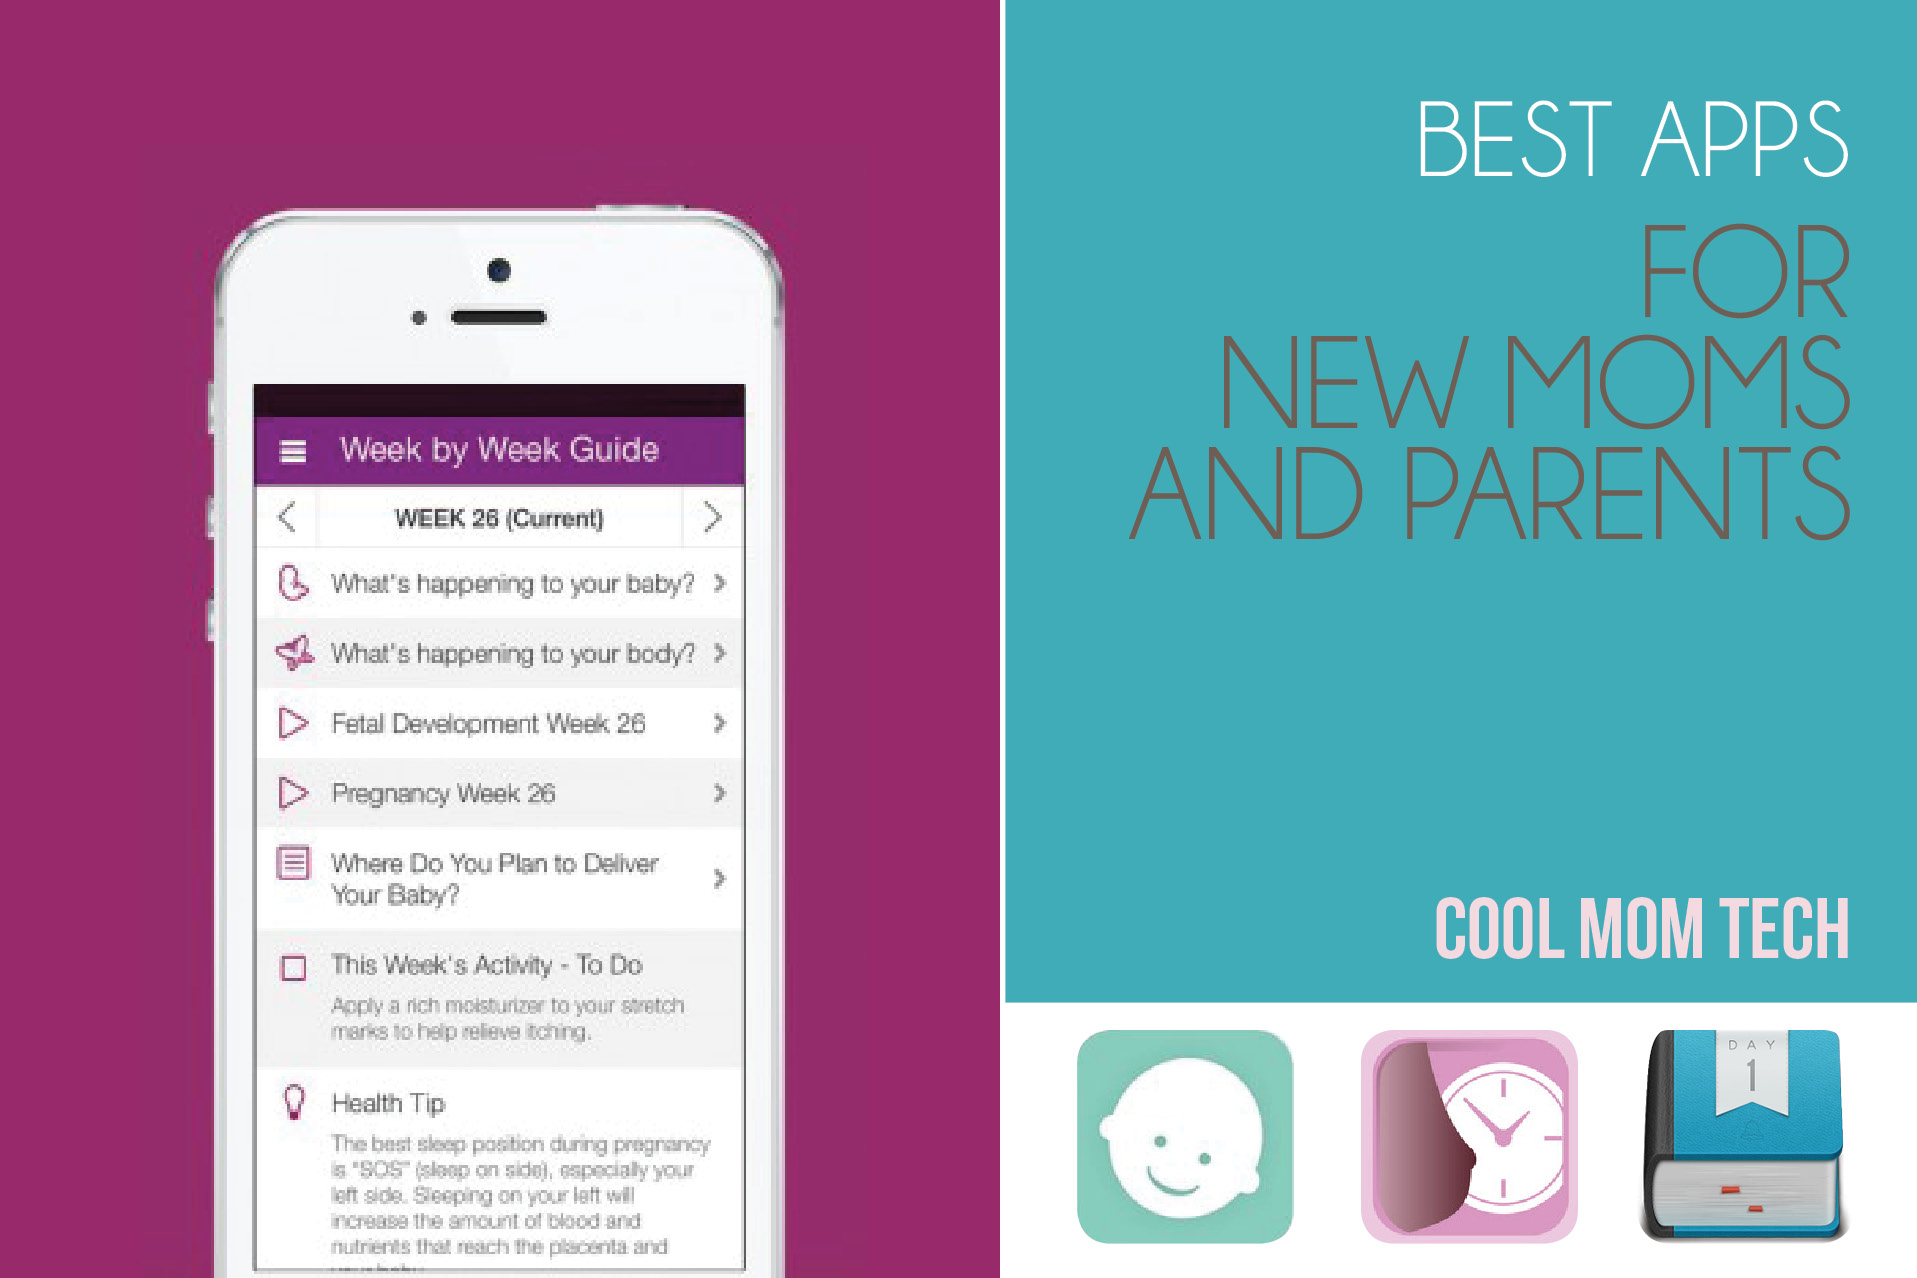 10 of the best apps for new moms and parents